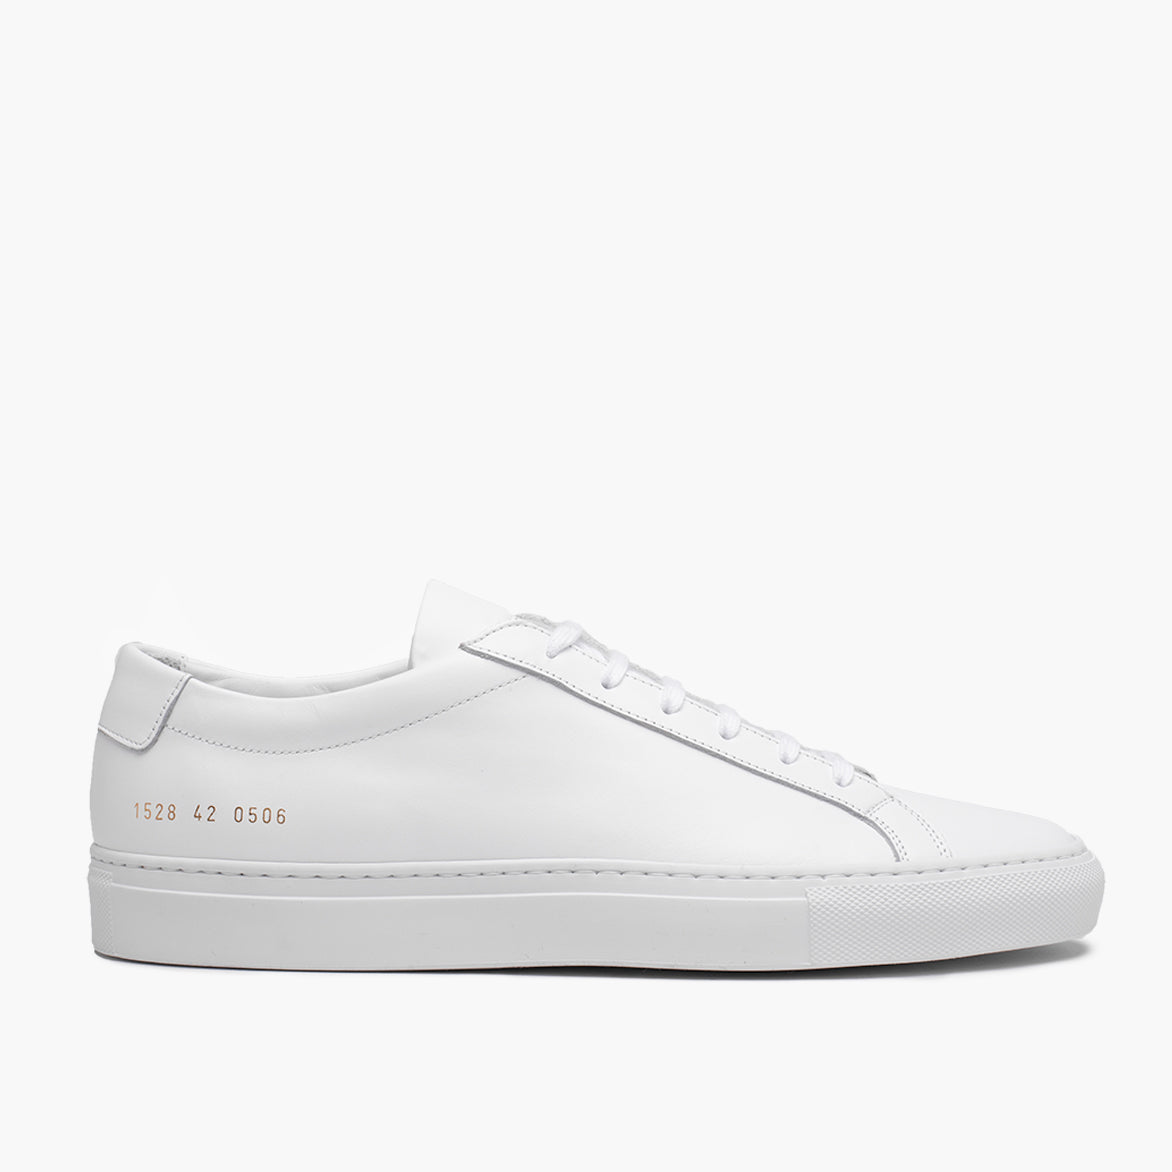 ORIGINAL ACHILLES LOW - WHITE